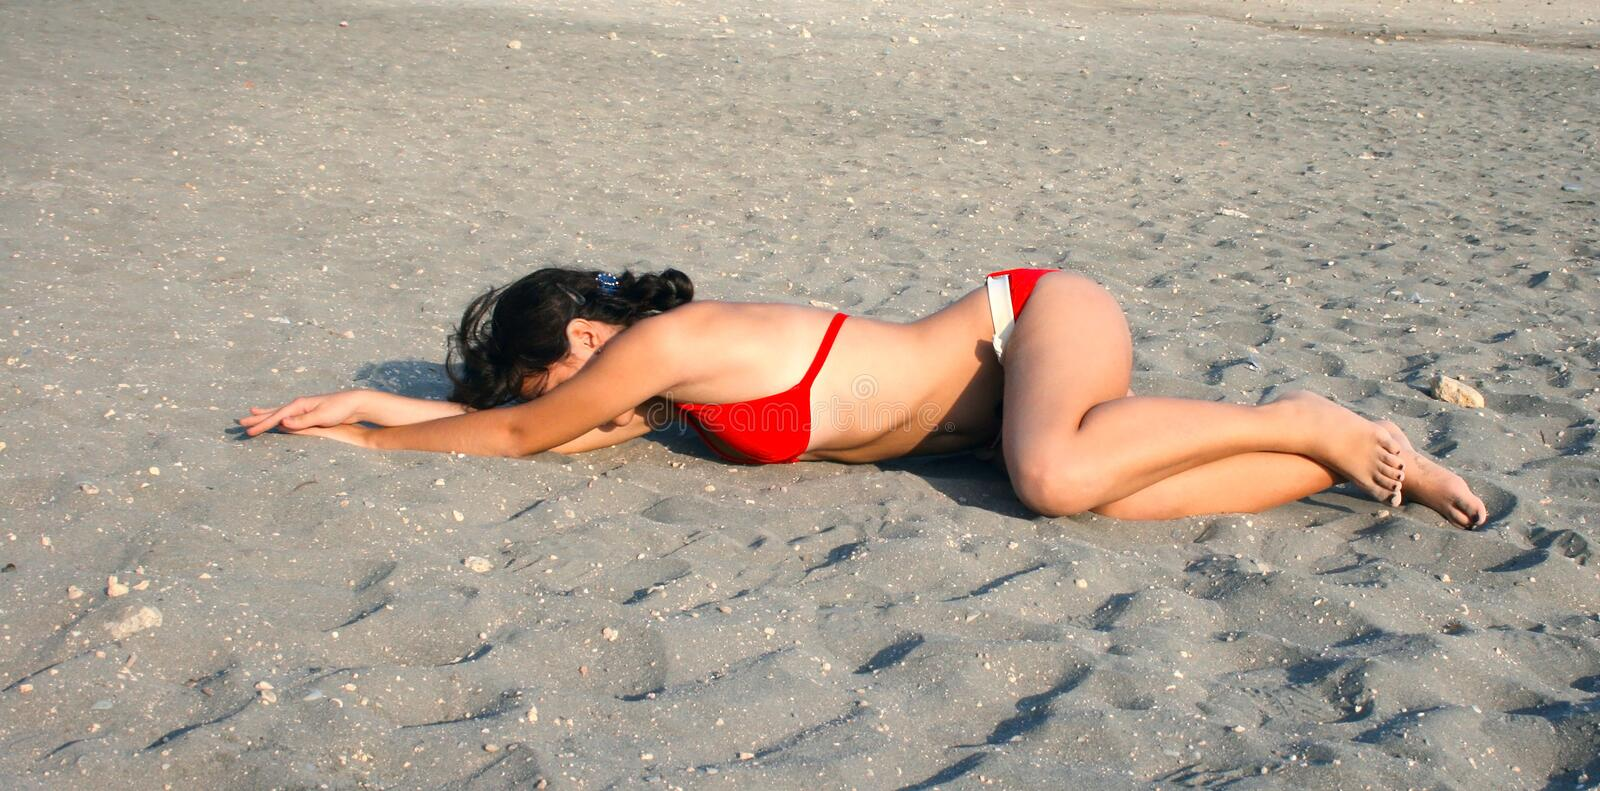 Download Pretty girl on sand stock image. Image of person, attractive - 12837519